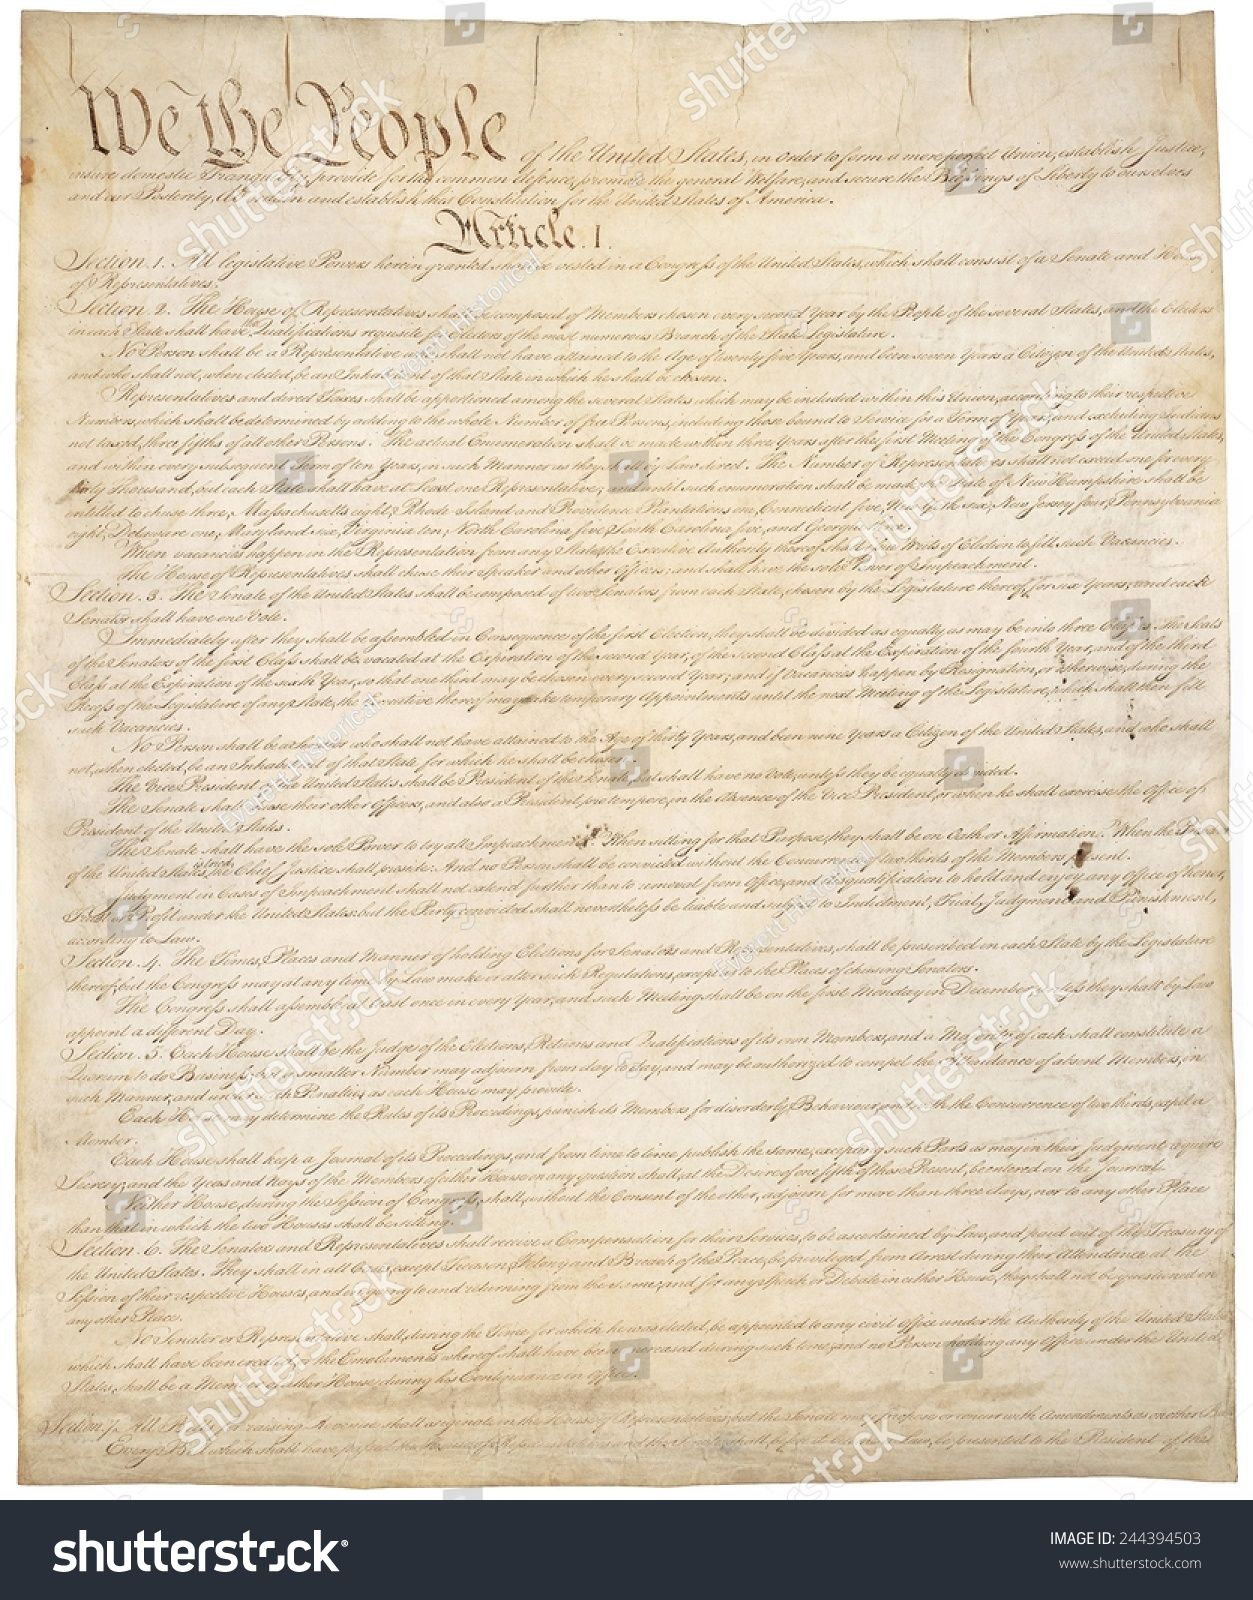 the creation of the constitution of the united states The constitution of the united states of america 2 preamble we the  people of the united states, in order to form a more perfect union,.